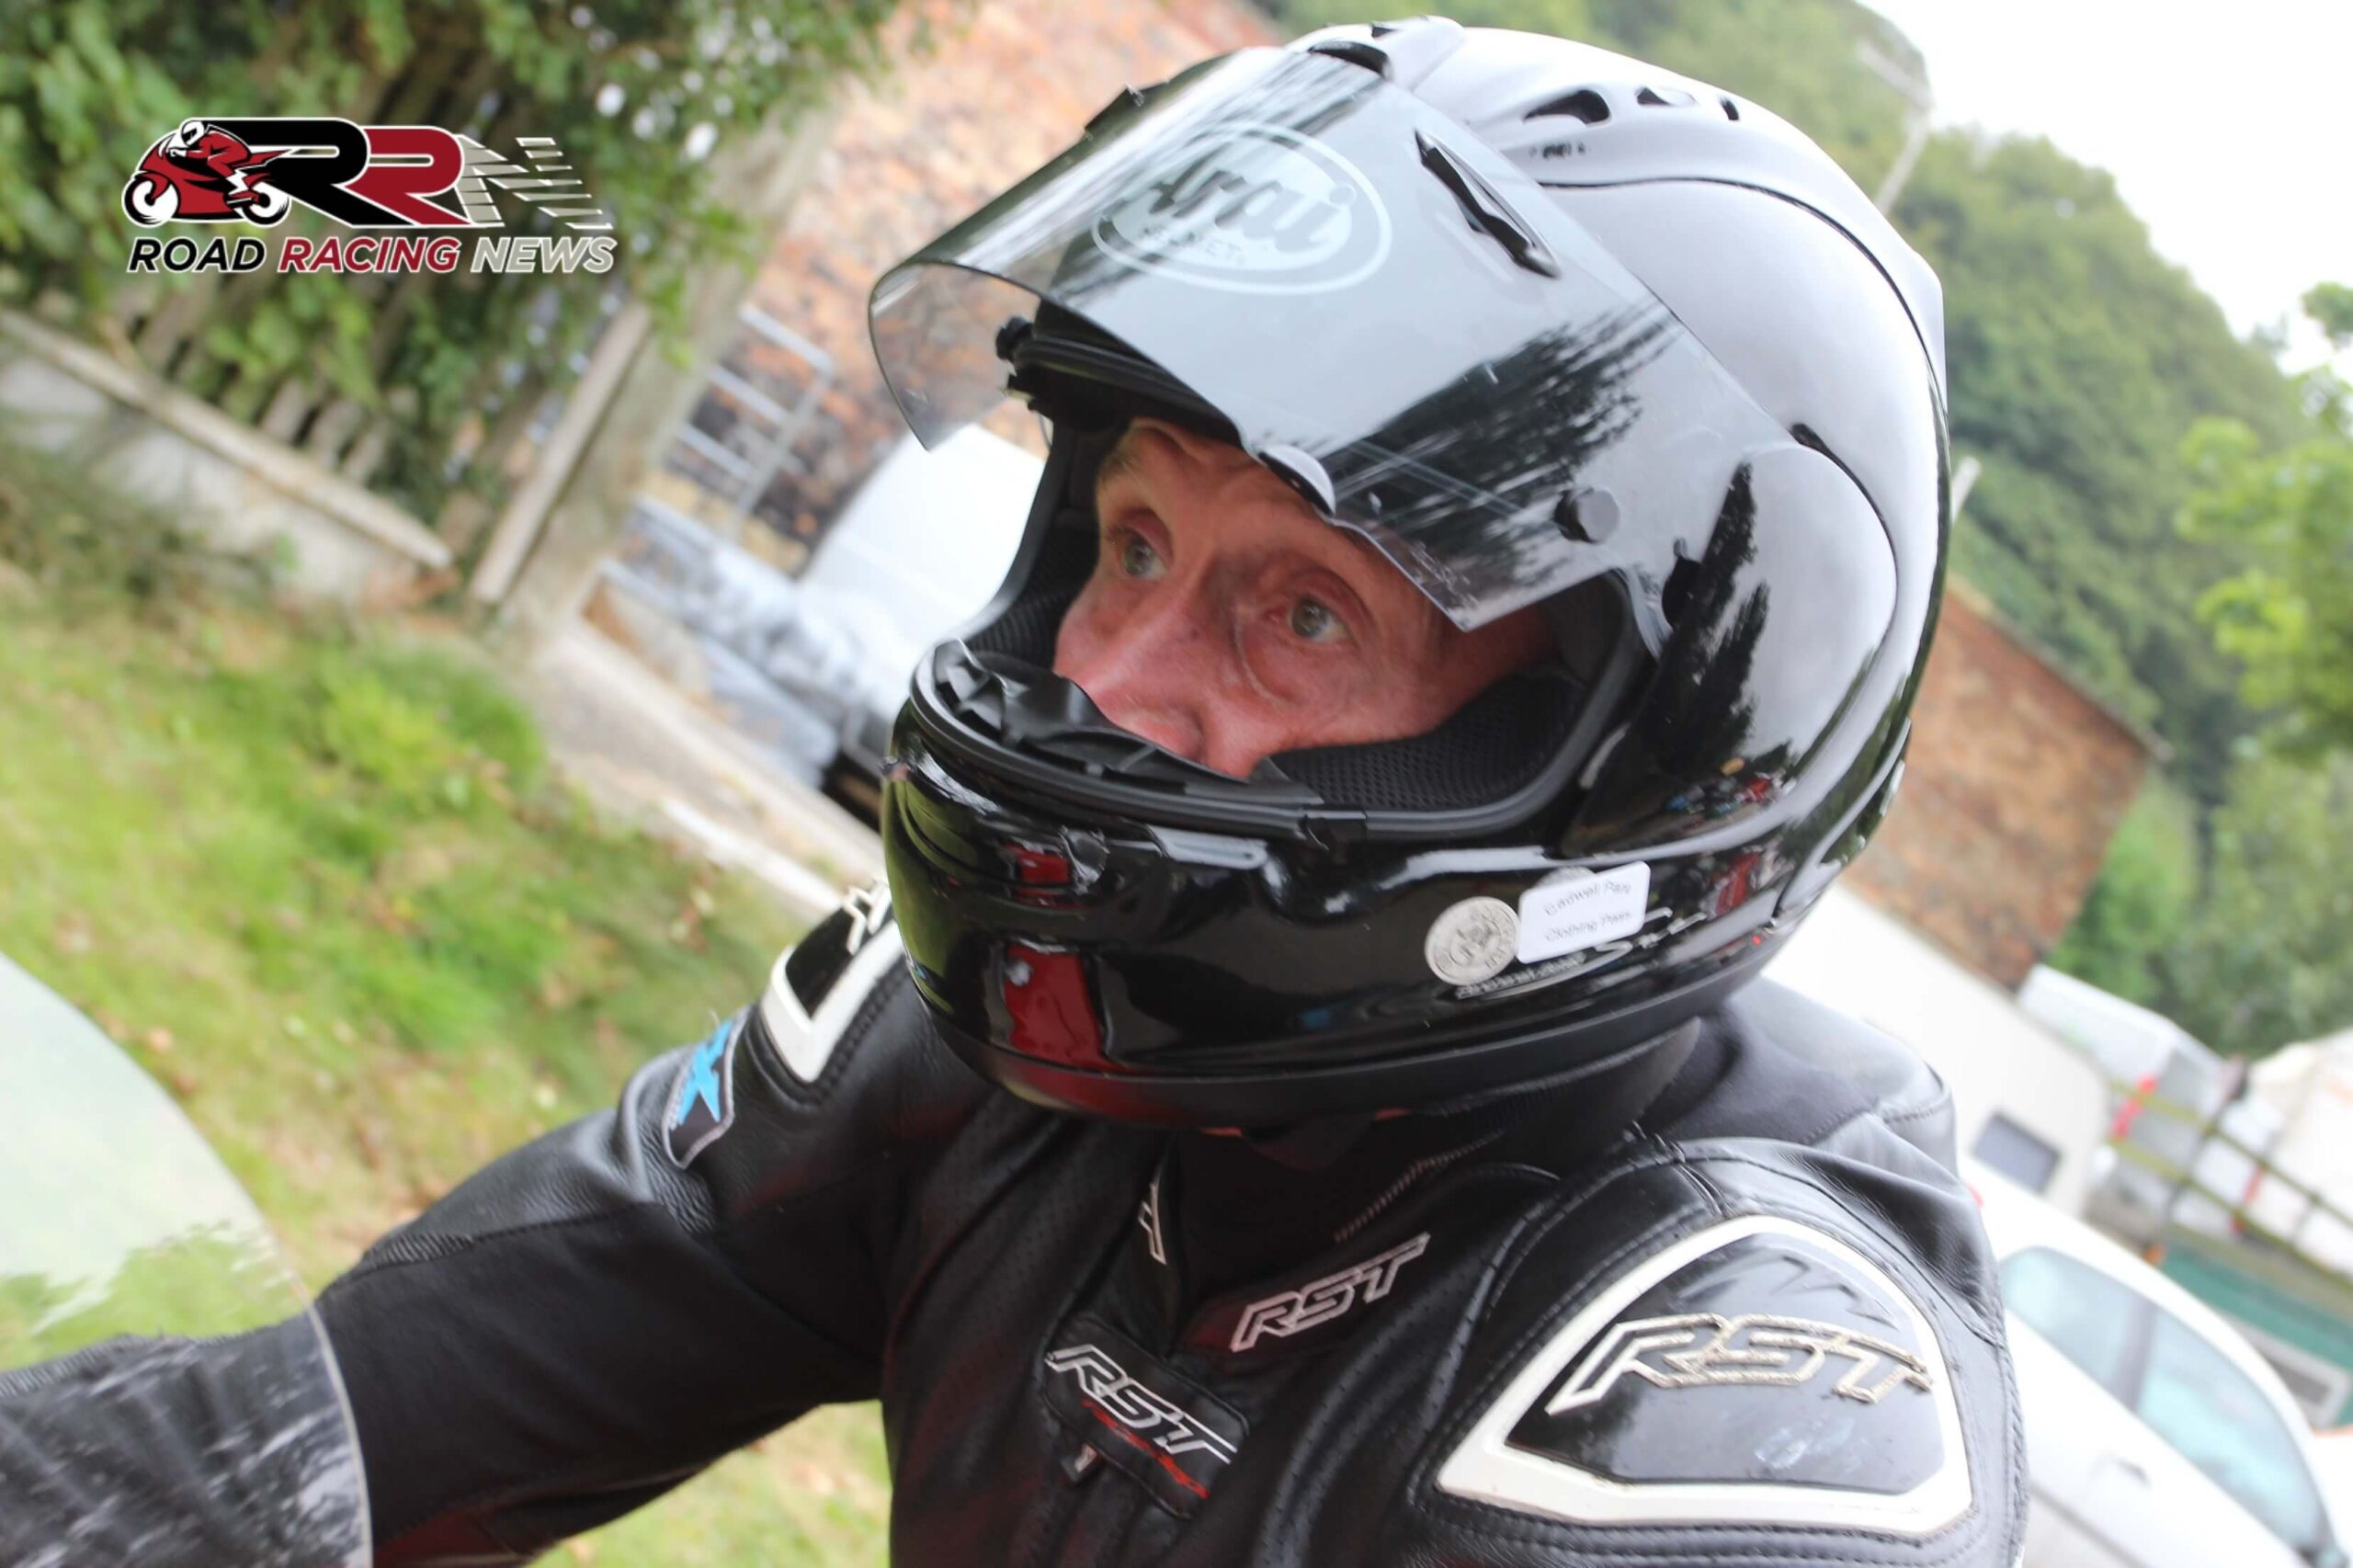 Road Racer's Adventures: Wirral 100, Oulton Park